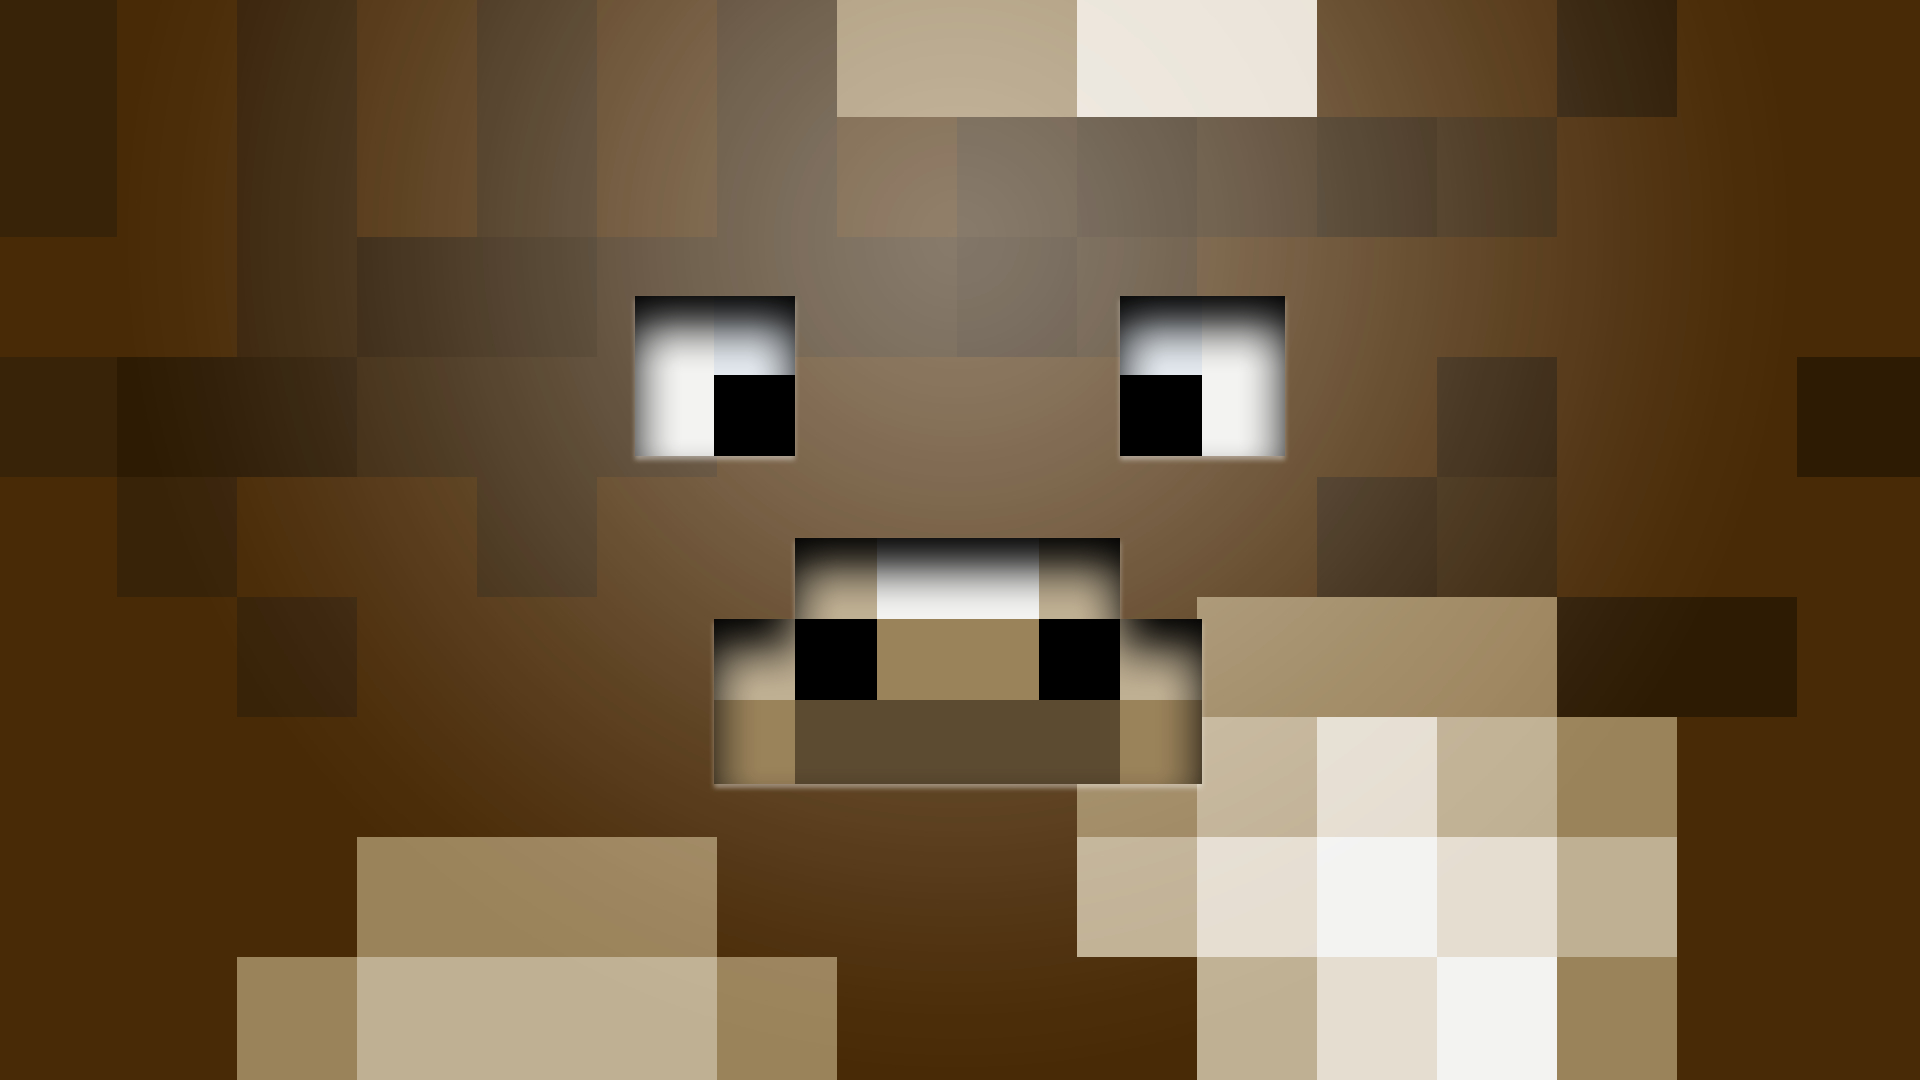 Cows minecraft faces game HD Wallpaper